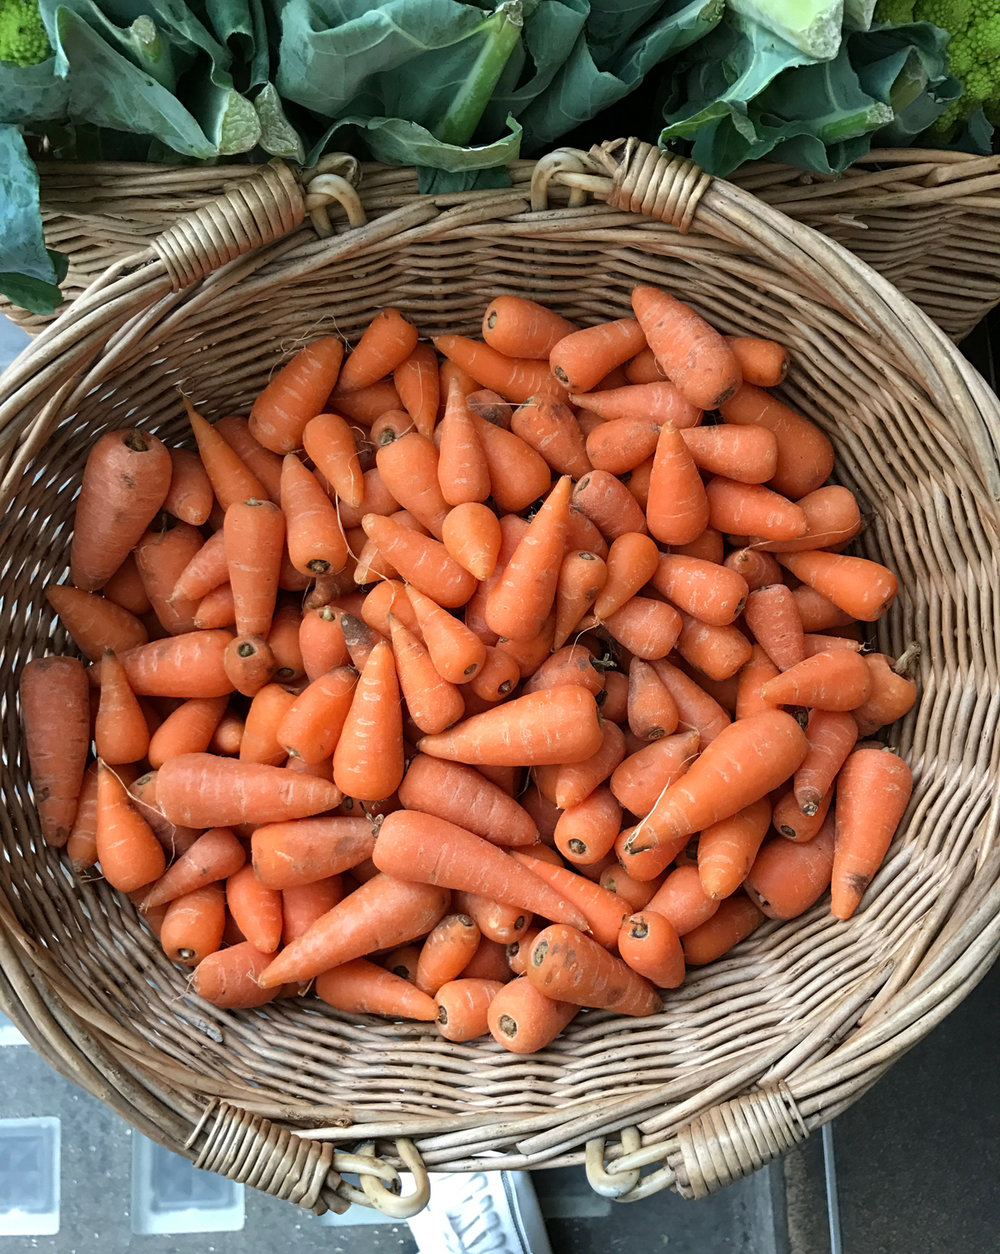 Wee little carrots